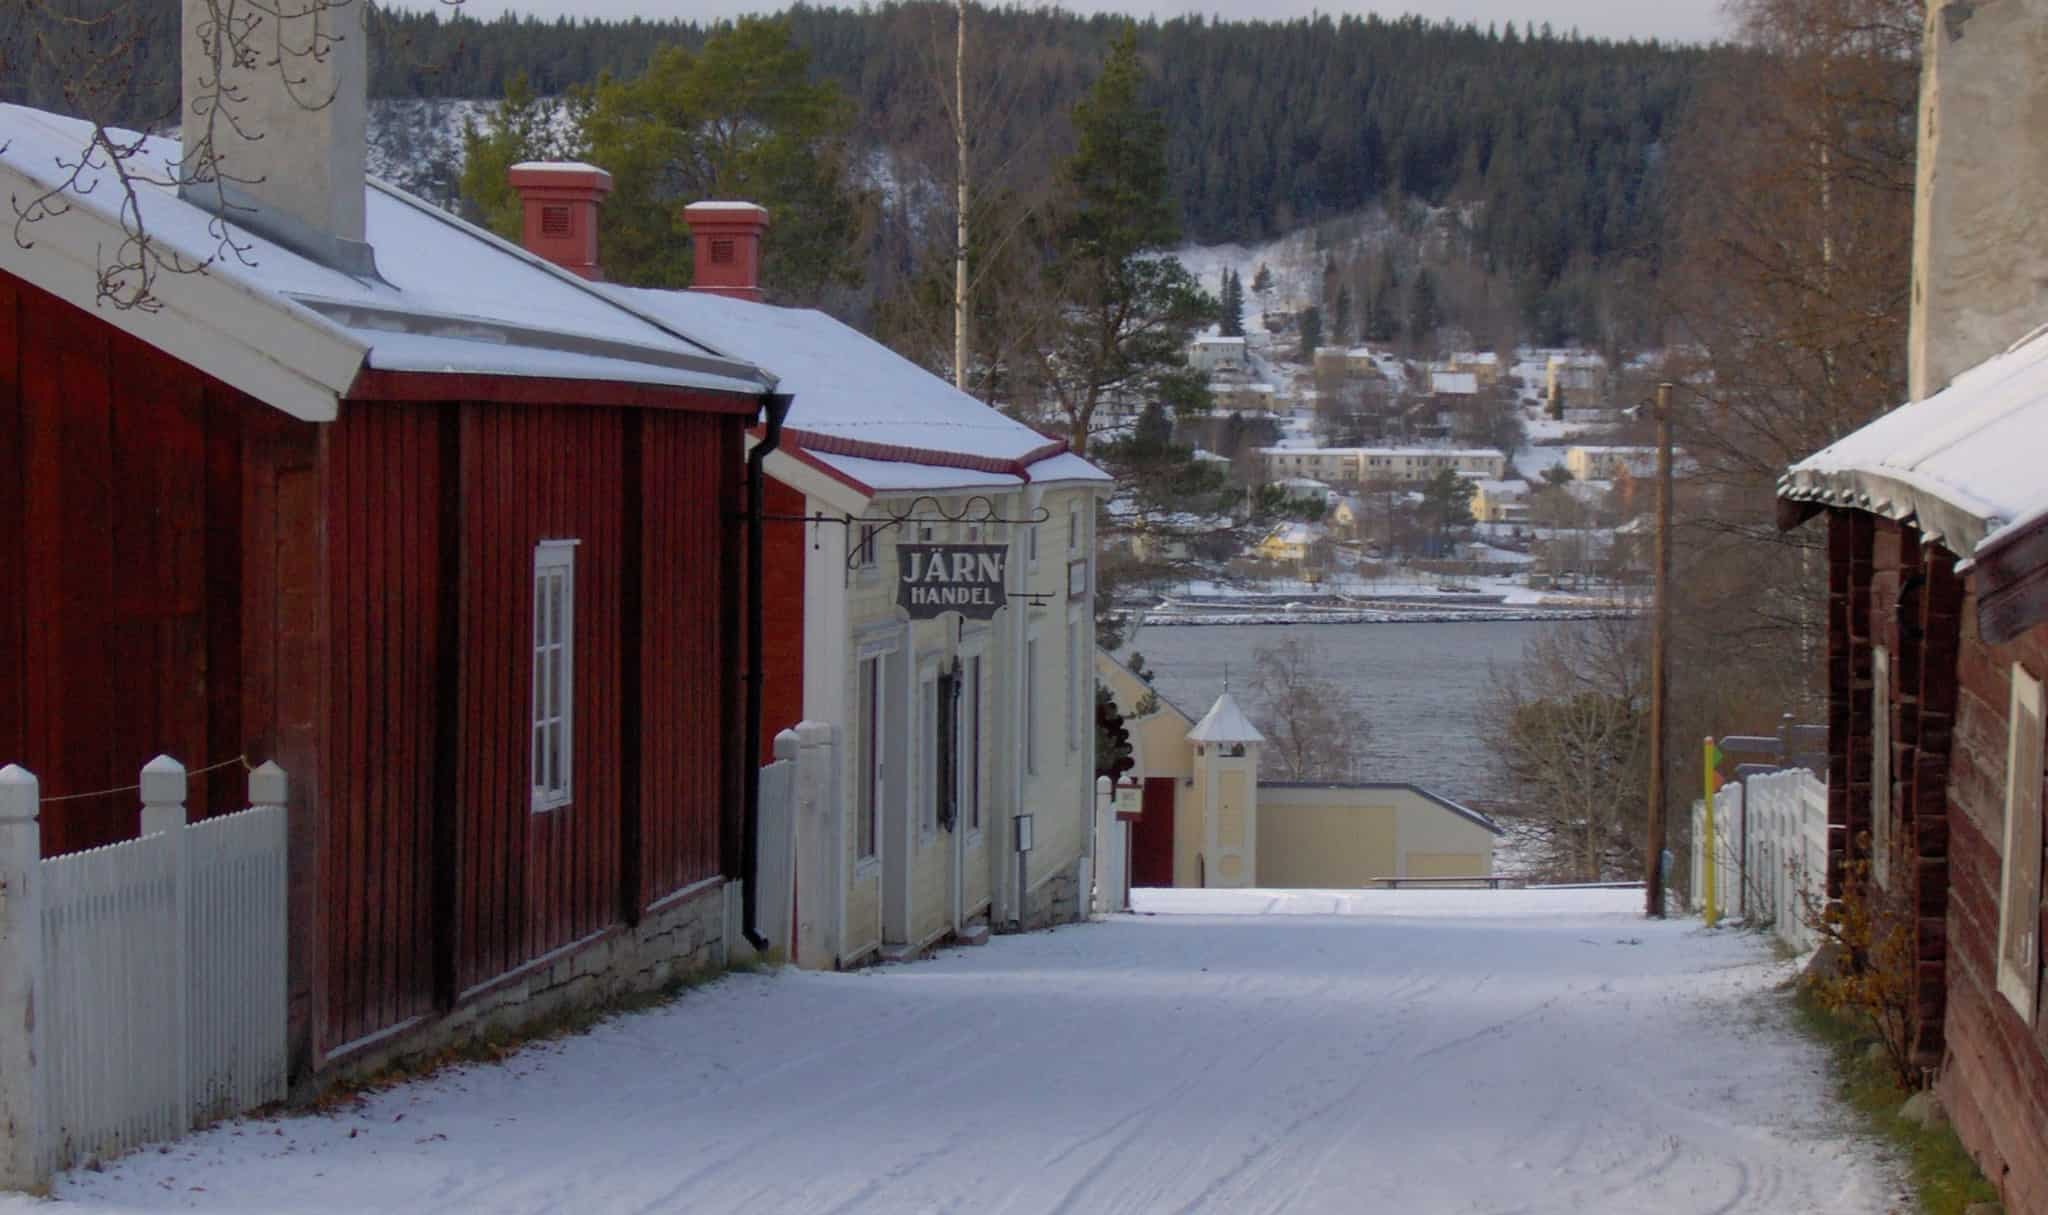 Jamtli offers an exciting journey through the history of Jämtland and Härjedalen.